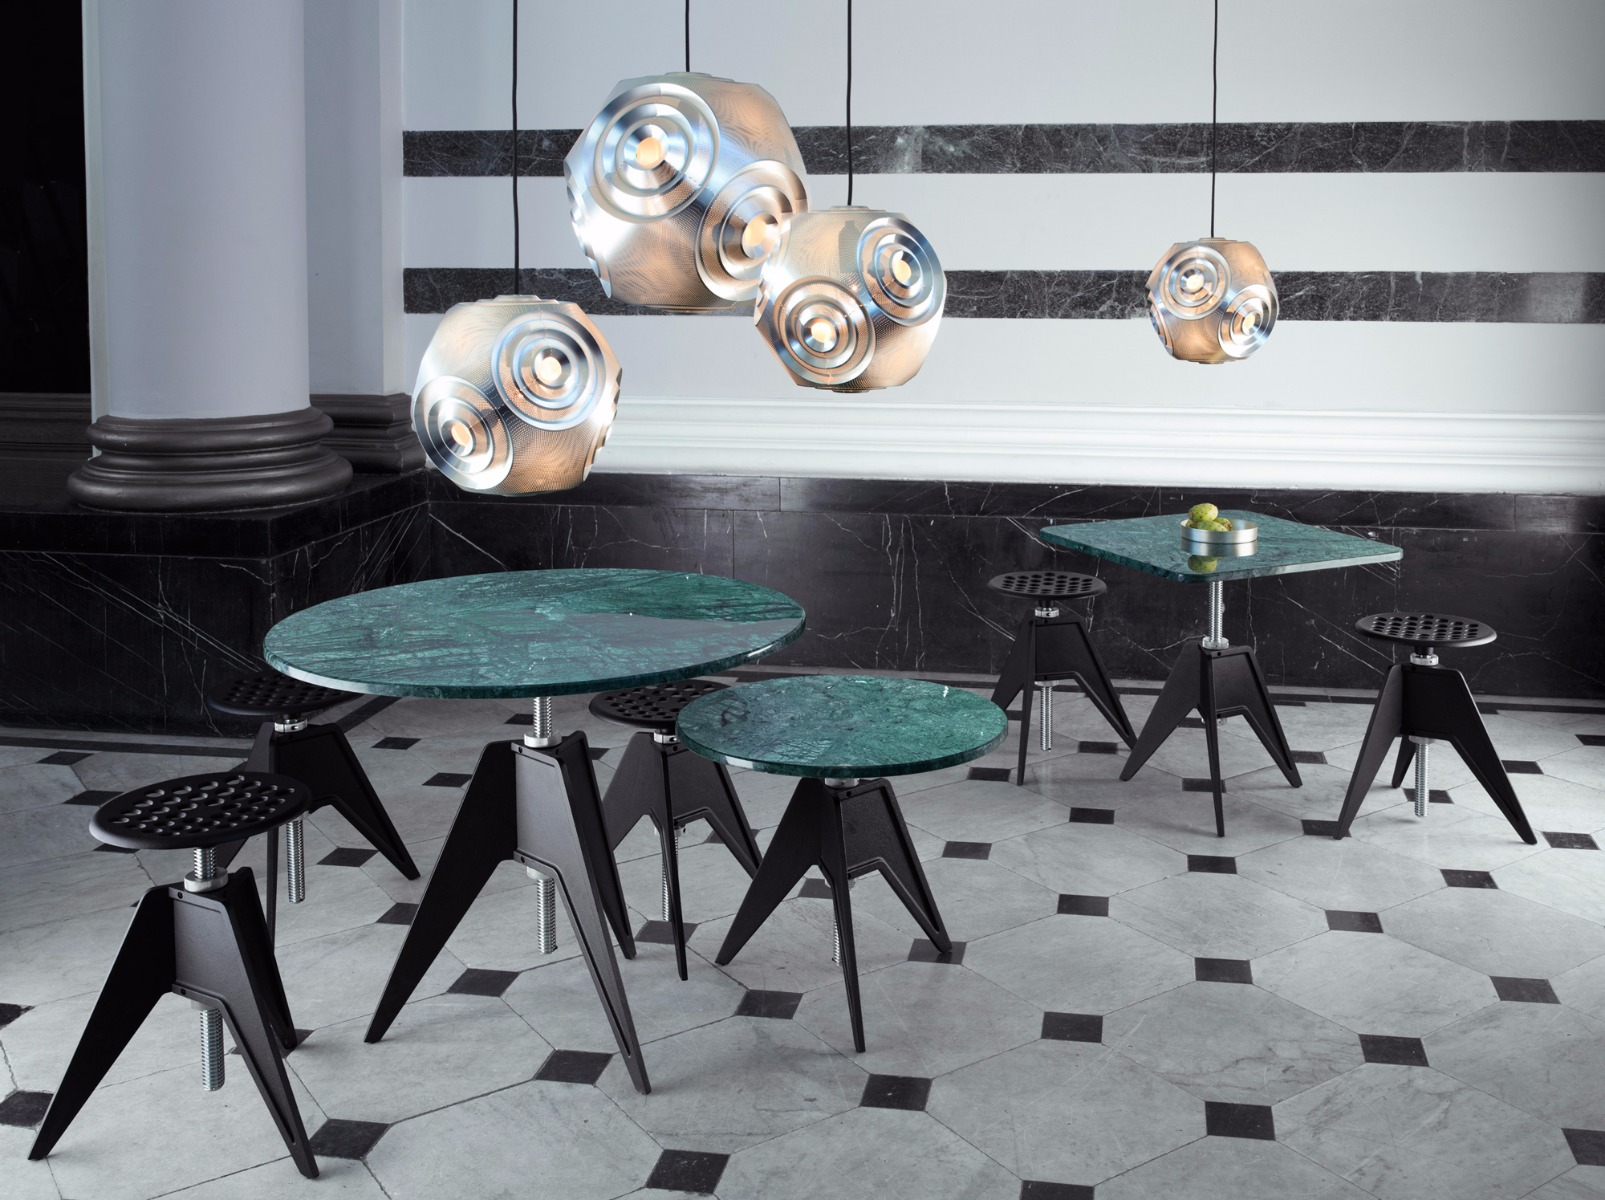 Screw tables and chairs with Curve lighting launched at Orgatec